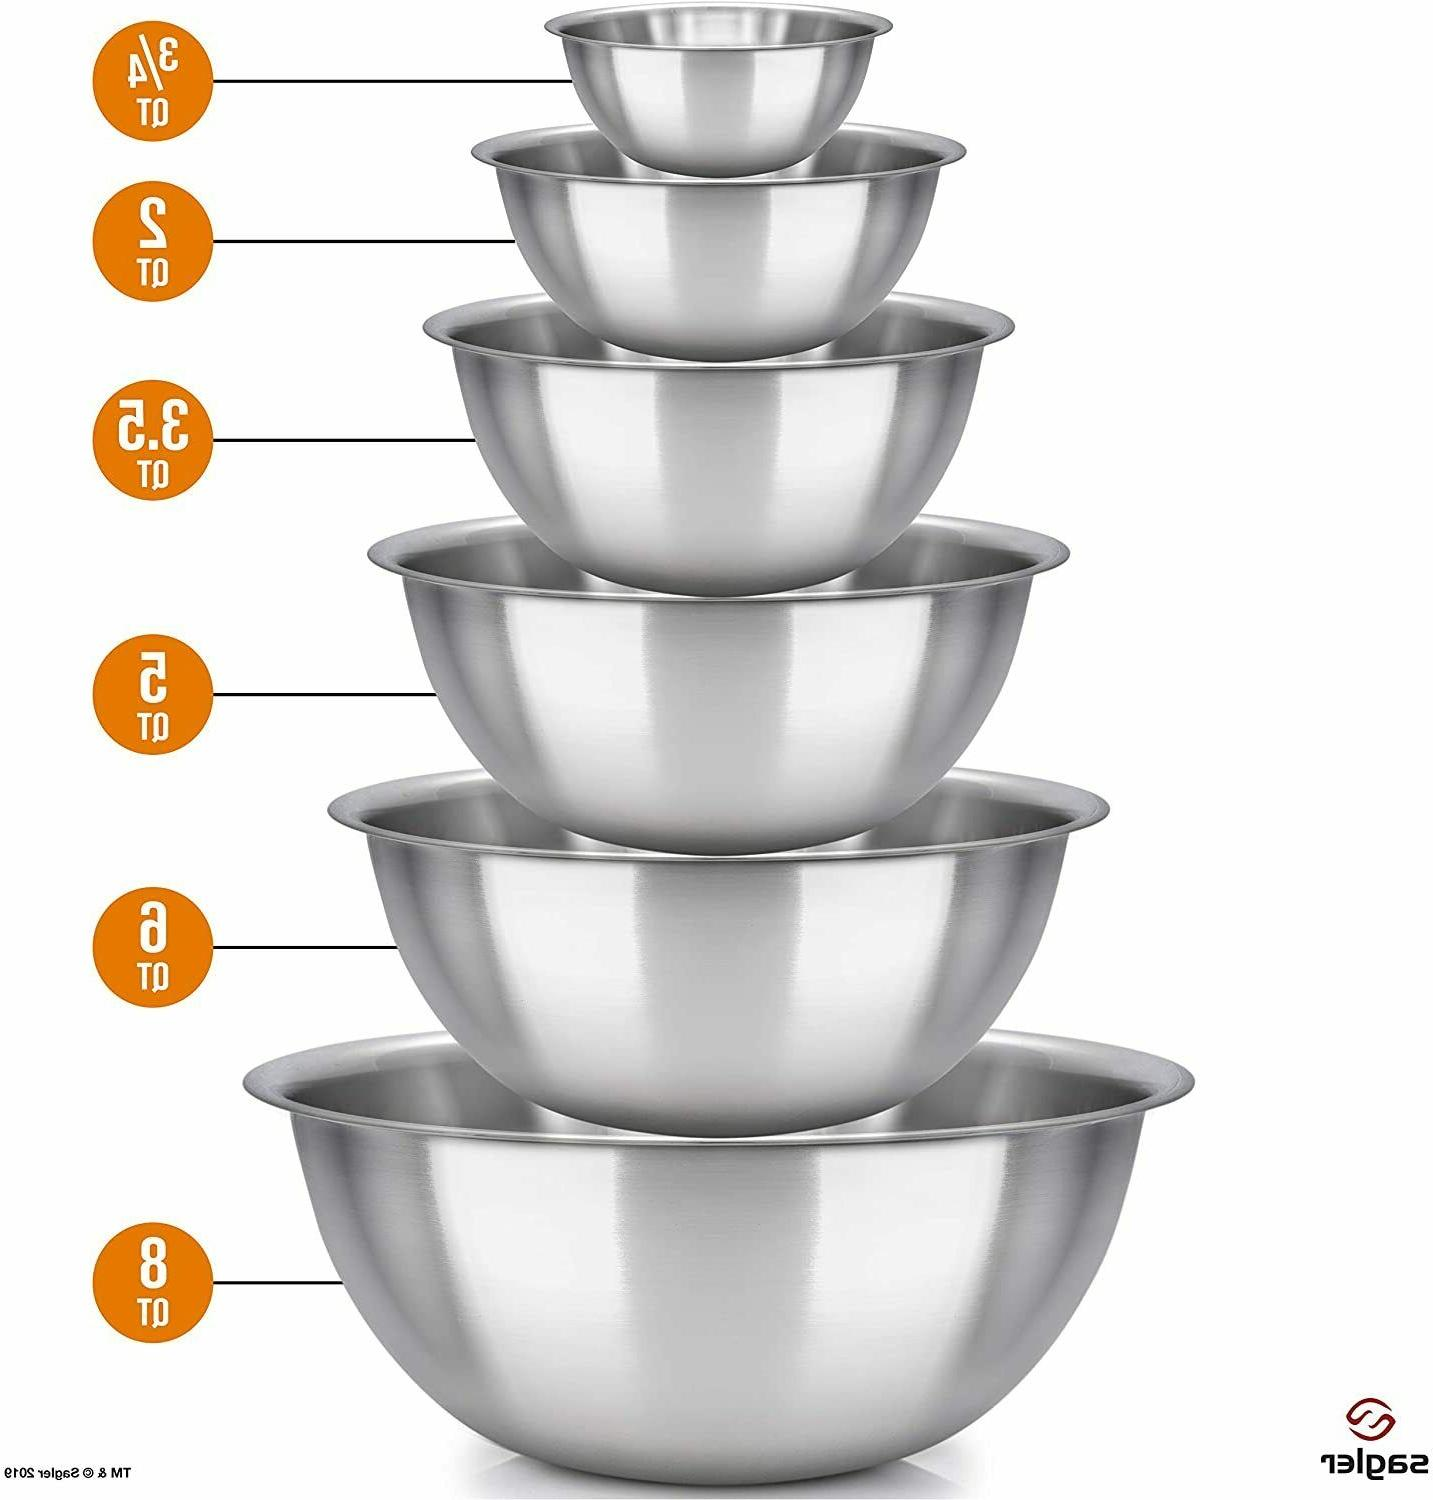 mixing bowls - mixing bowl Set of 6 - stainless steel mixing